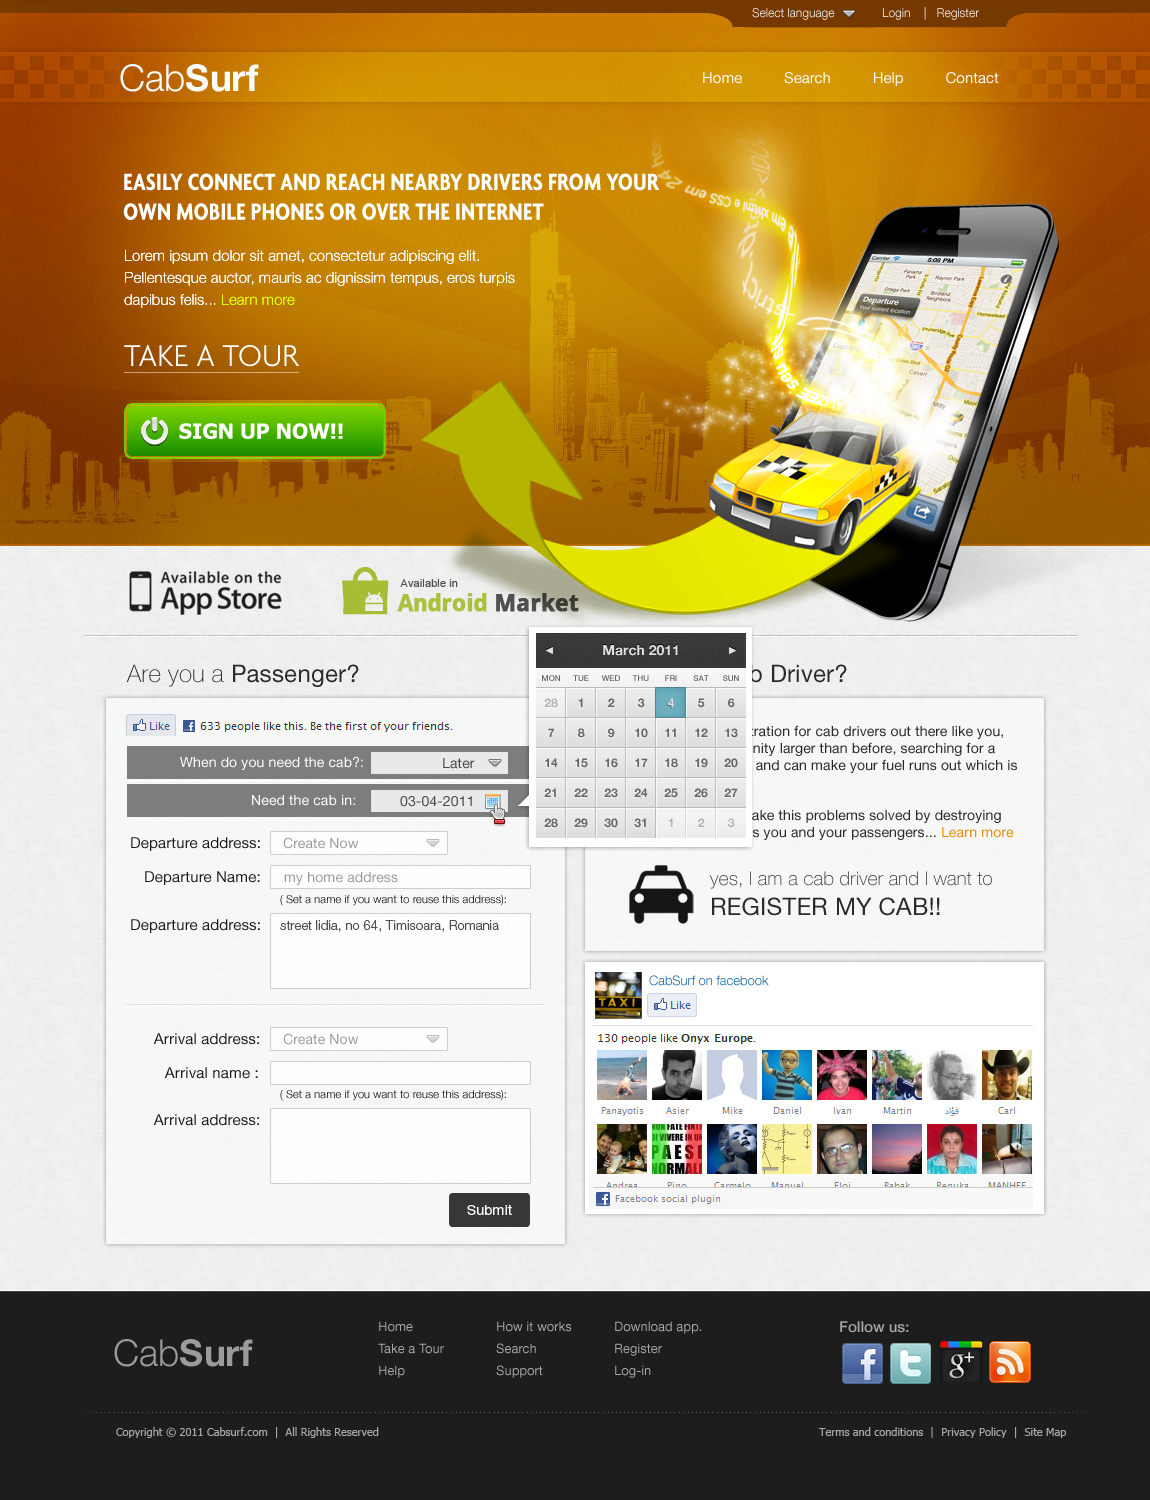 Online Taxi reservation service needs outstanding design